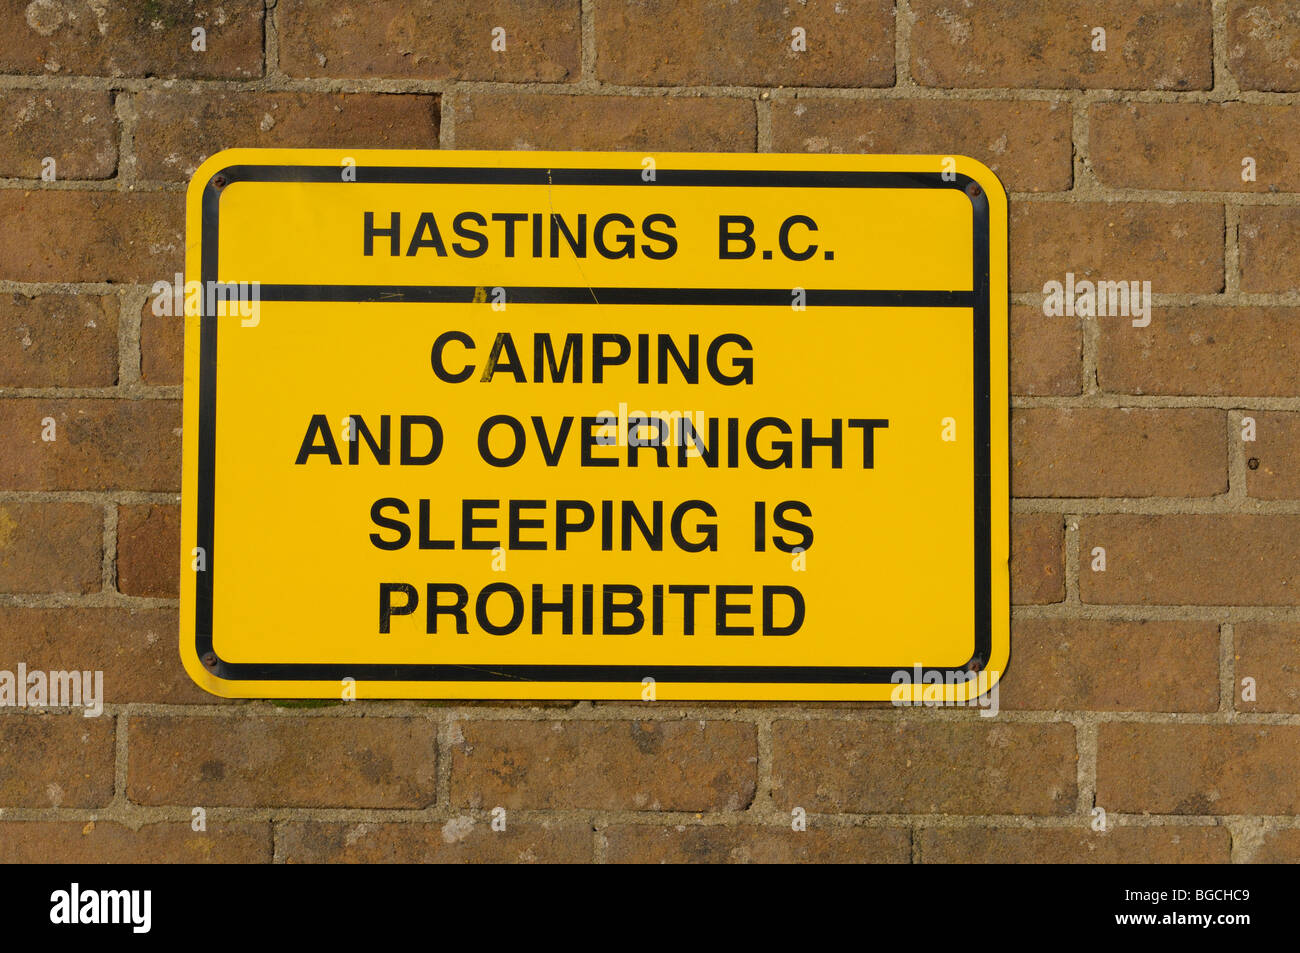 Sign banning camping at Hastings Sussex England UK - Stock Image